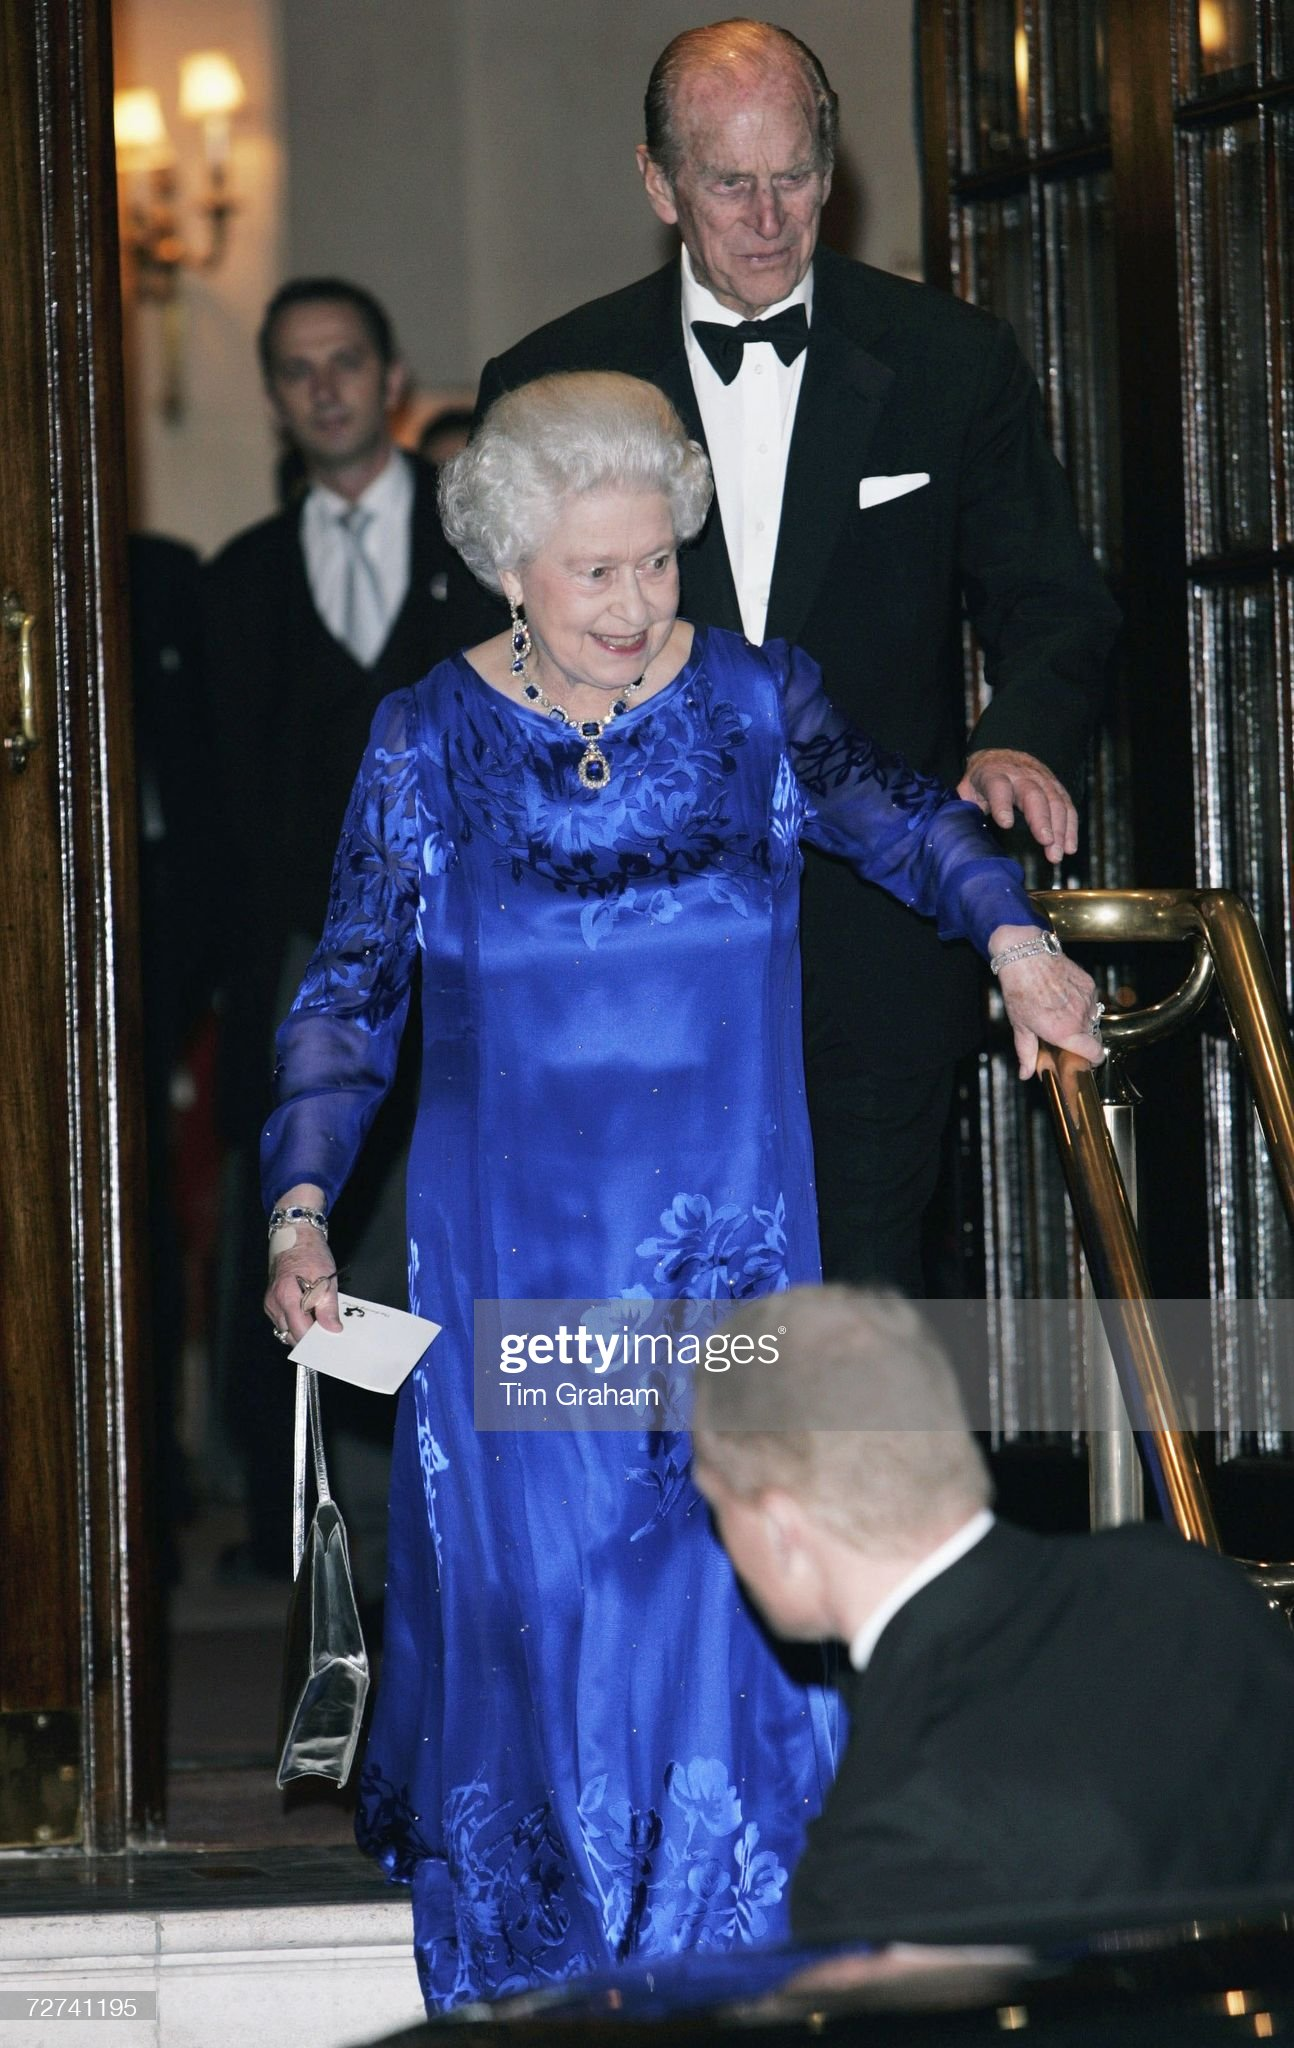 The Queen's 80th Birthday - Private Party at The Ritz Hotel : News Photo